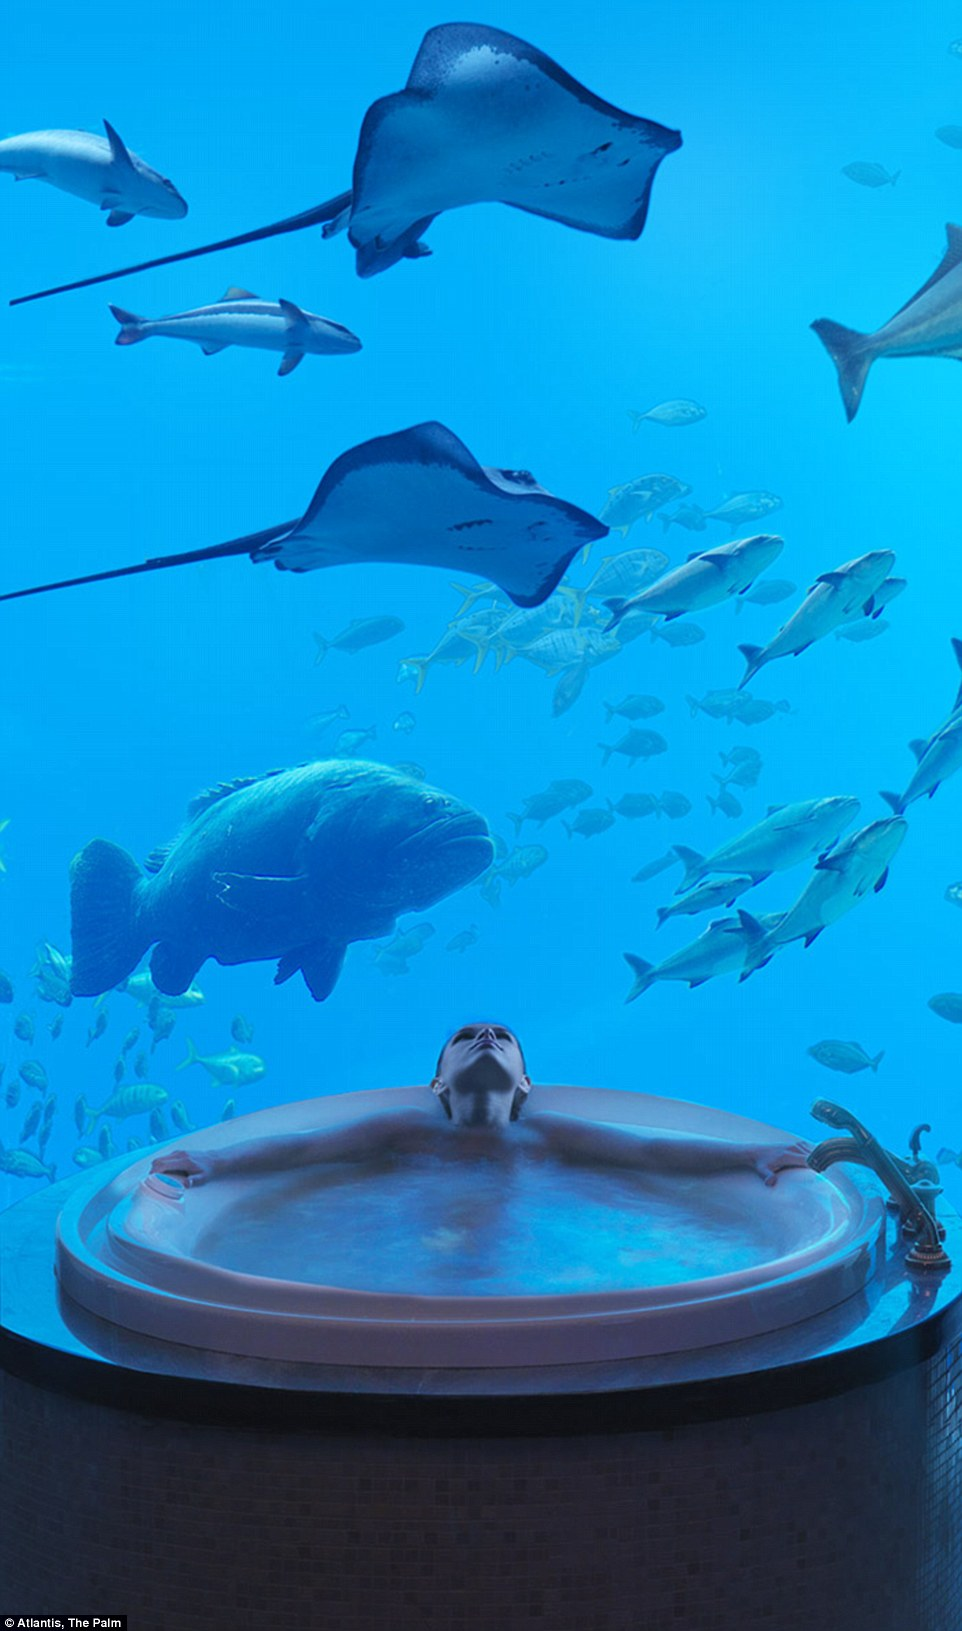 With a base price of about £5,450 ($8,200) a night, each suite has elegant perks, with the illusion of being under the sea